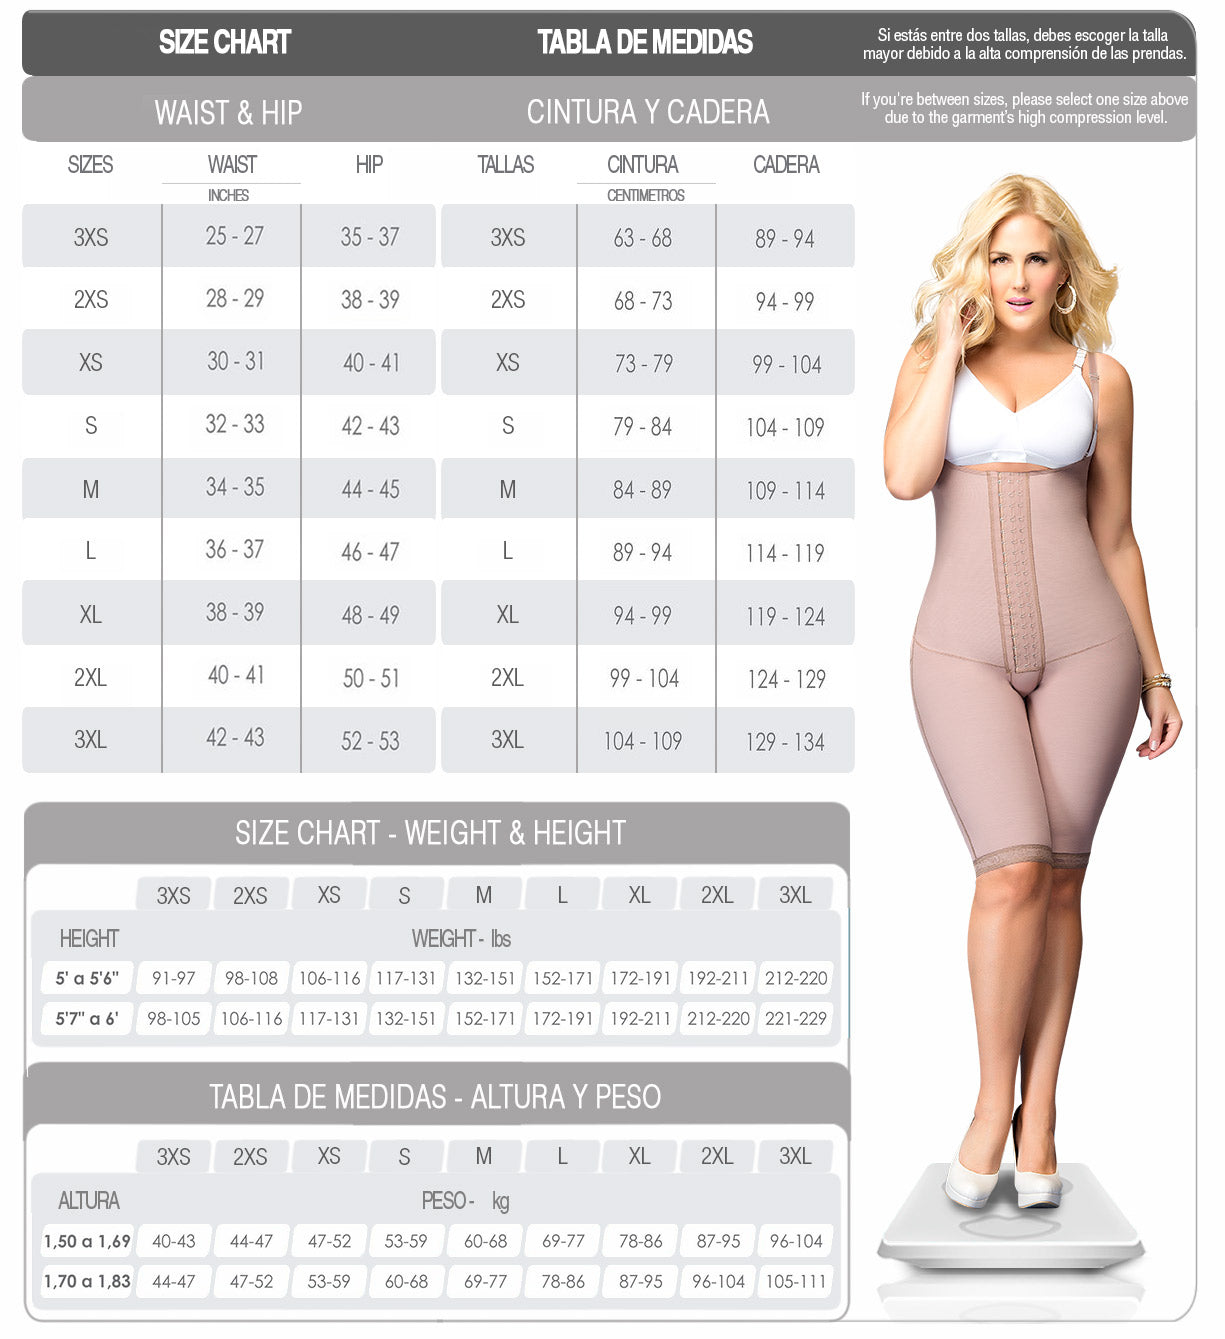 D'Prada Shapewear: 52 - Best Full Body Shaper w Bra - Showmee Store